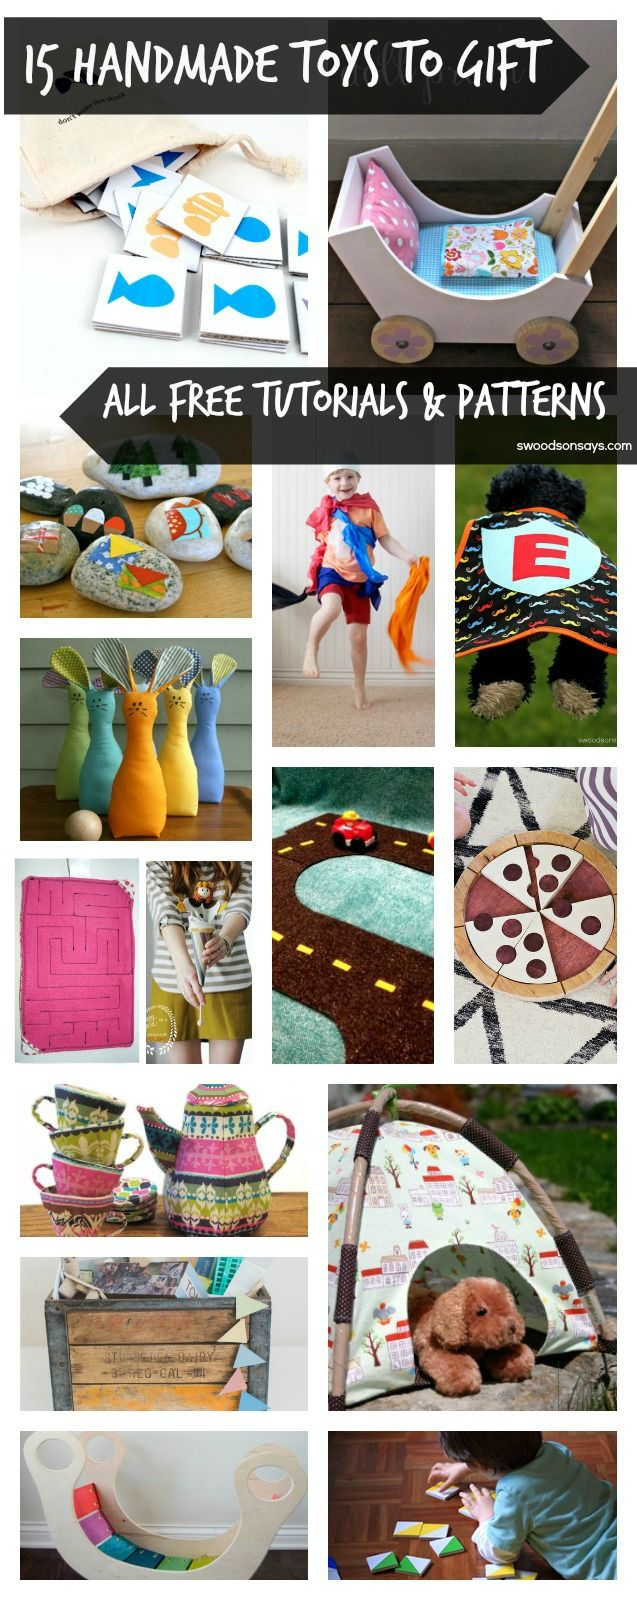 Handmade Toys to Gift Kids – 15 Free Patterns and Tutorials from Swoodsonsays.com